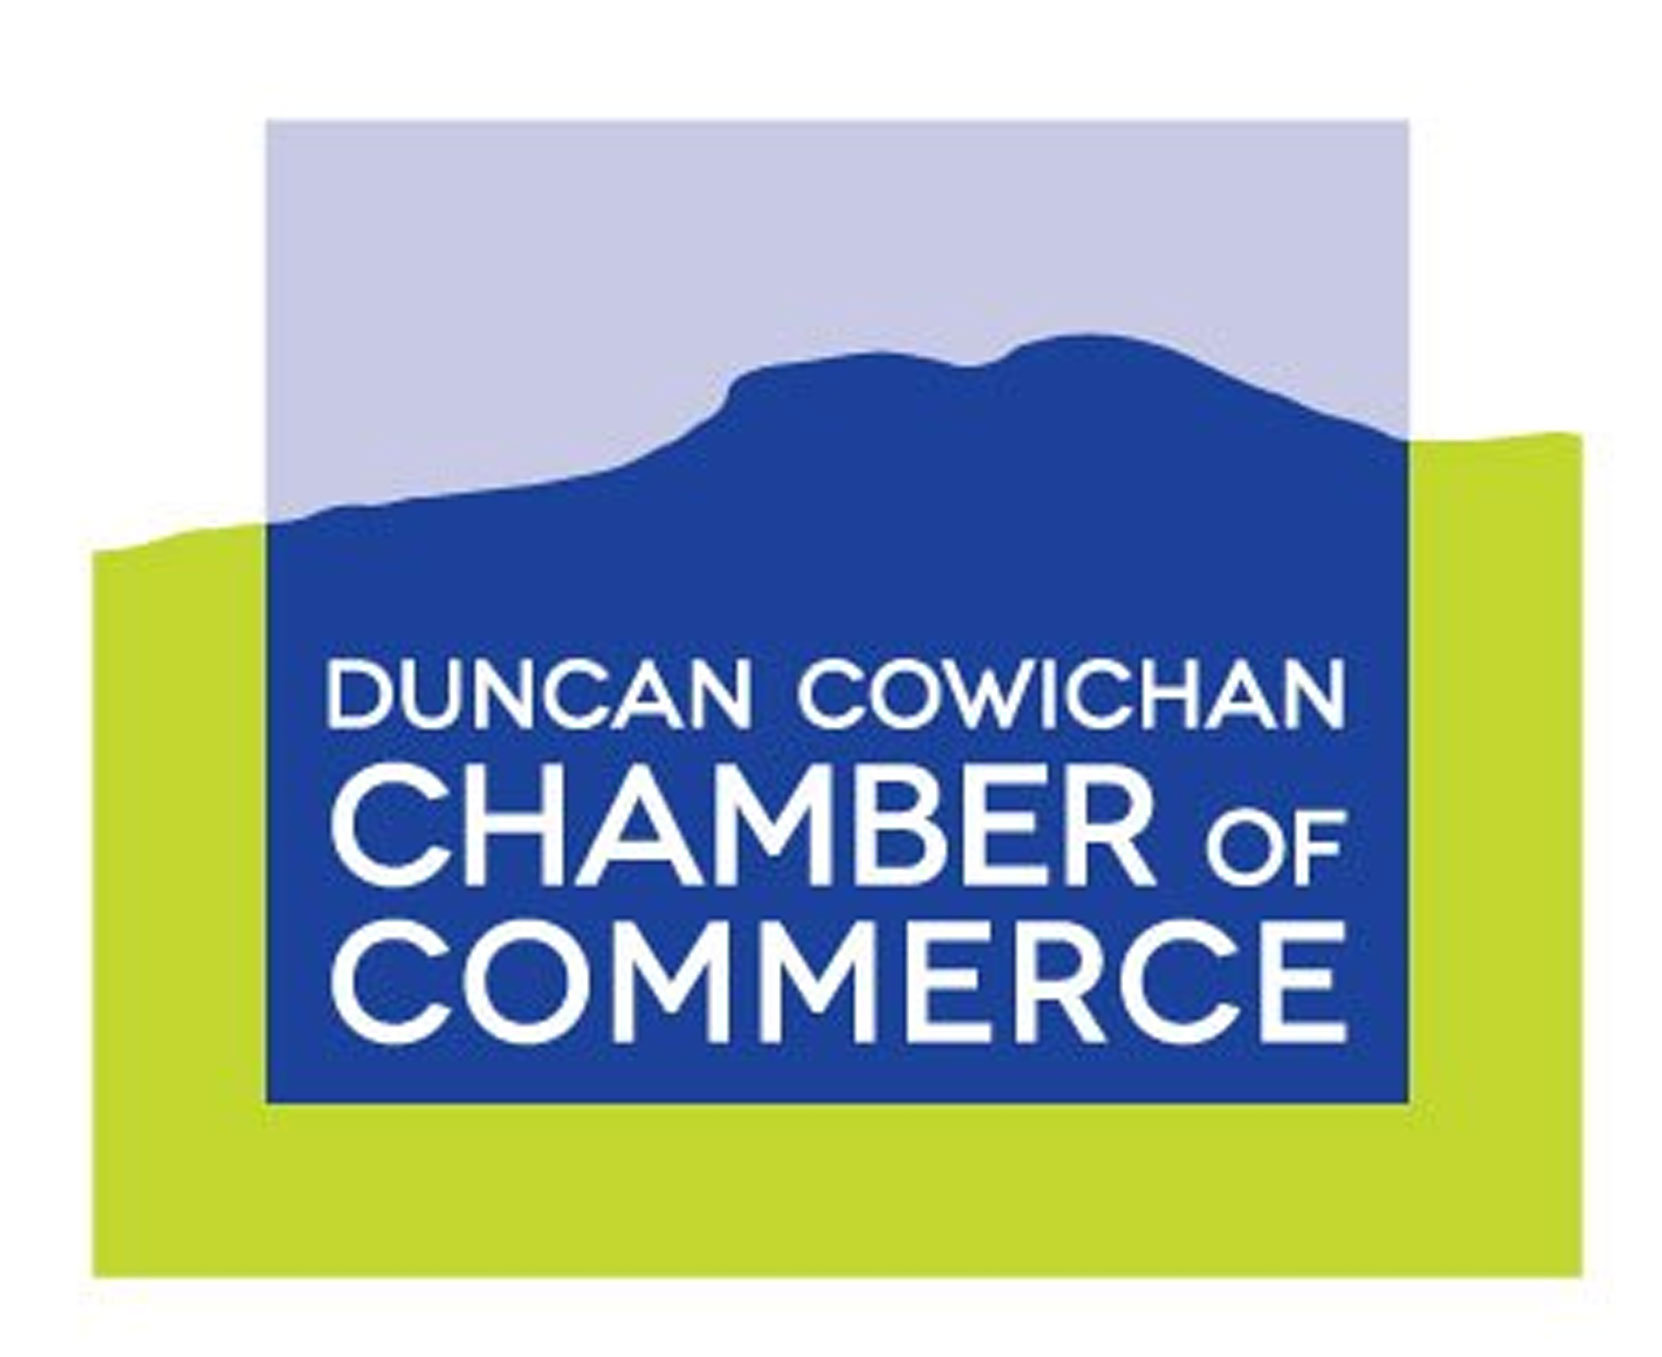 West Coast Driver Training & Education Inc. is a member of the Duncan Cowichan Chamber of Commerce.